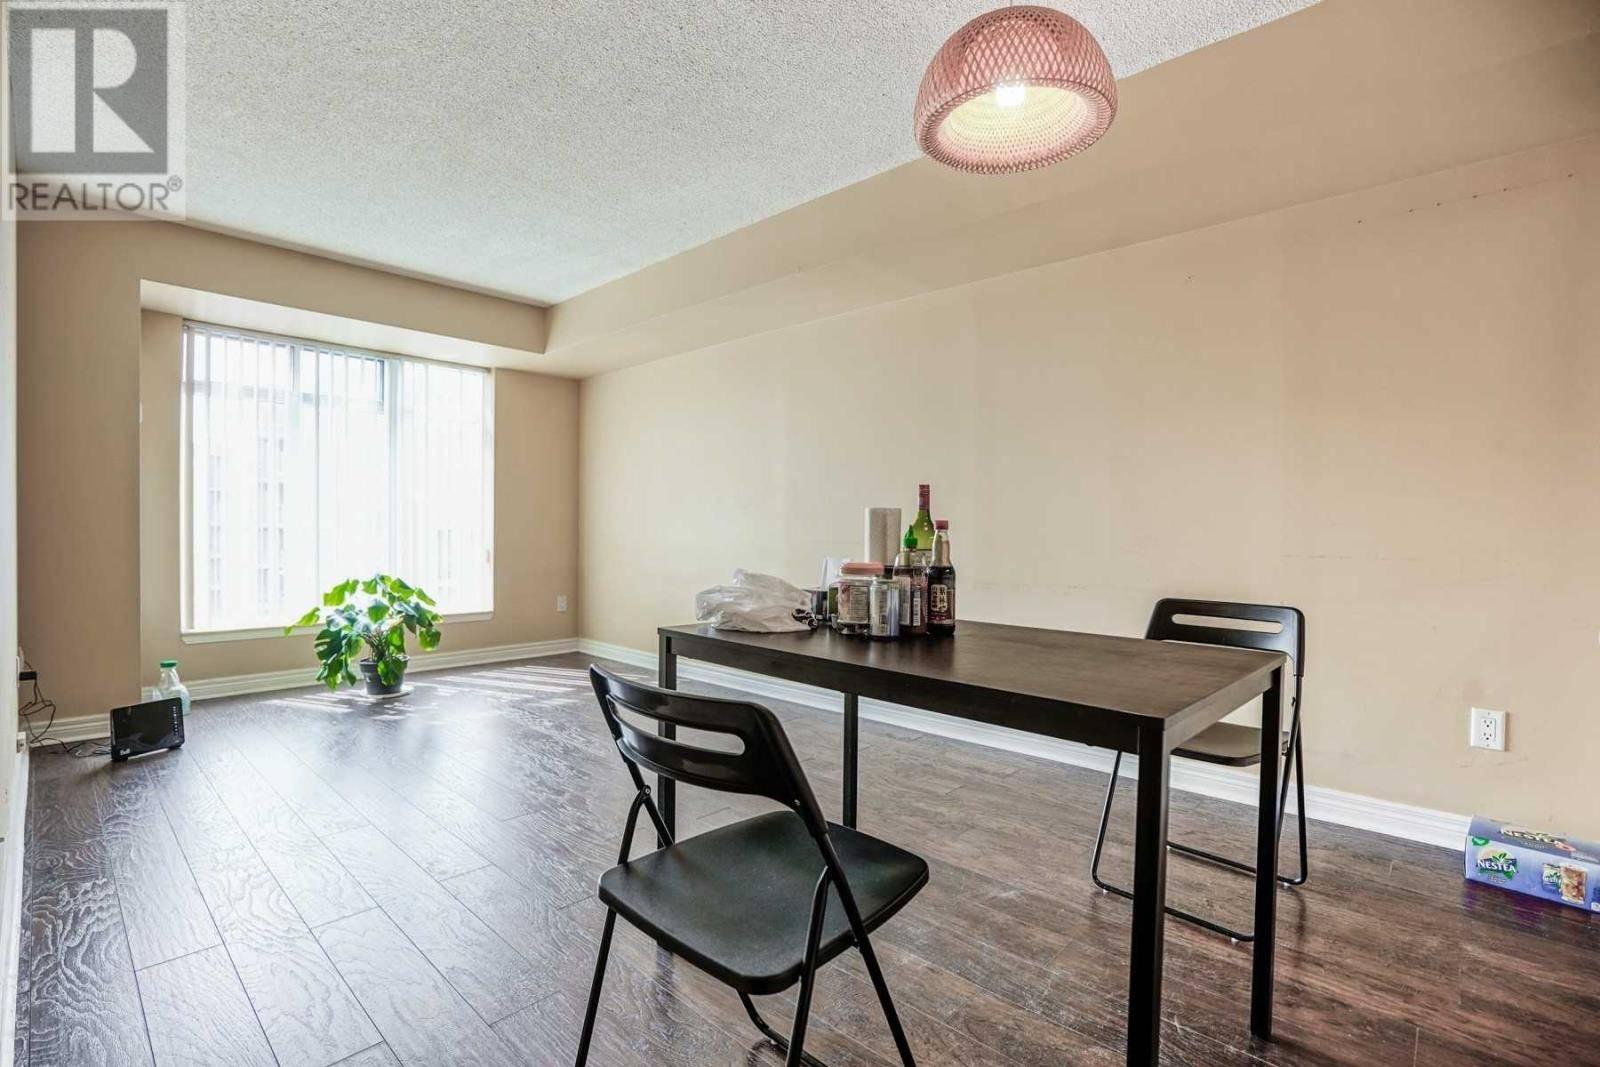 Condo for sale at 135 Pond Dr Unit 1109 Markham Ontario - MLS: N4743375